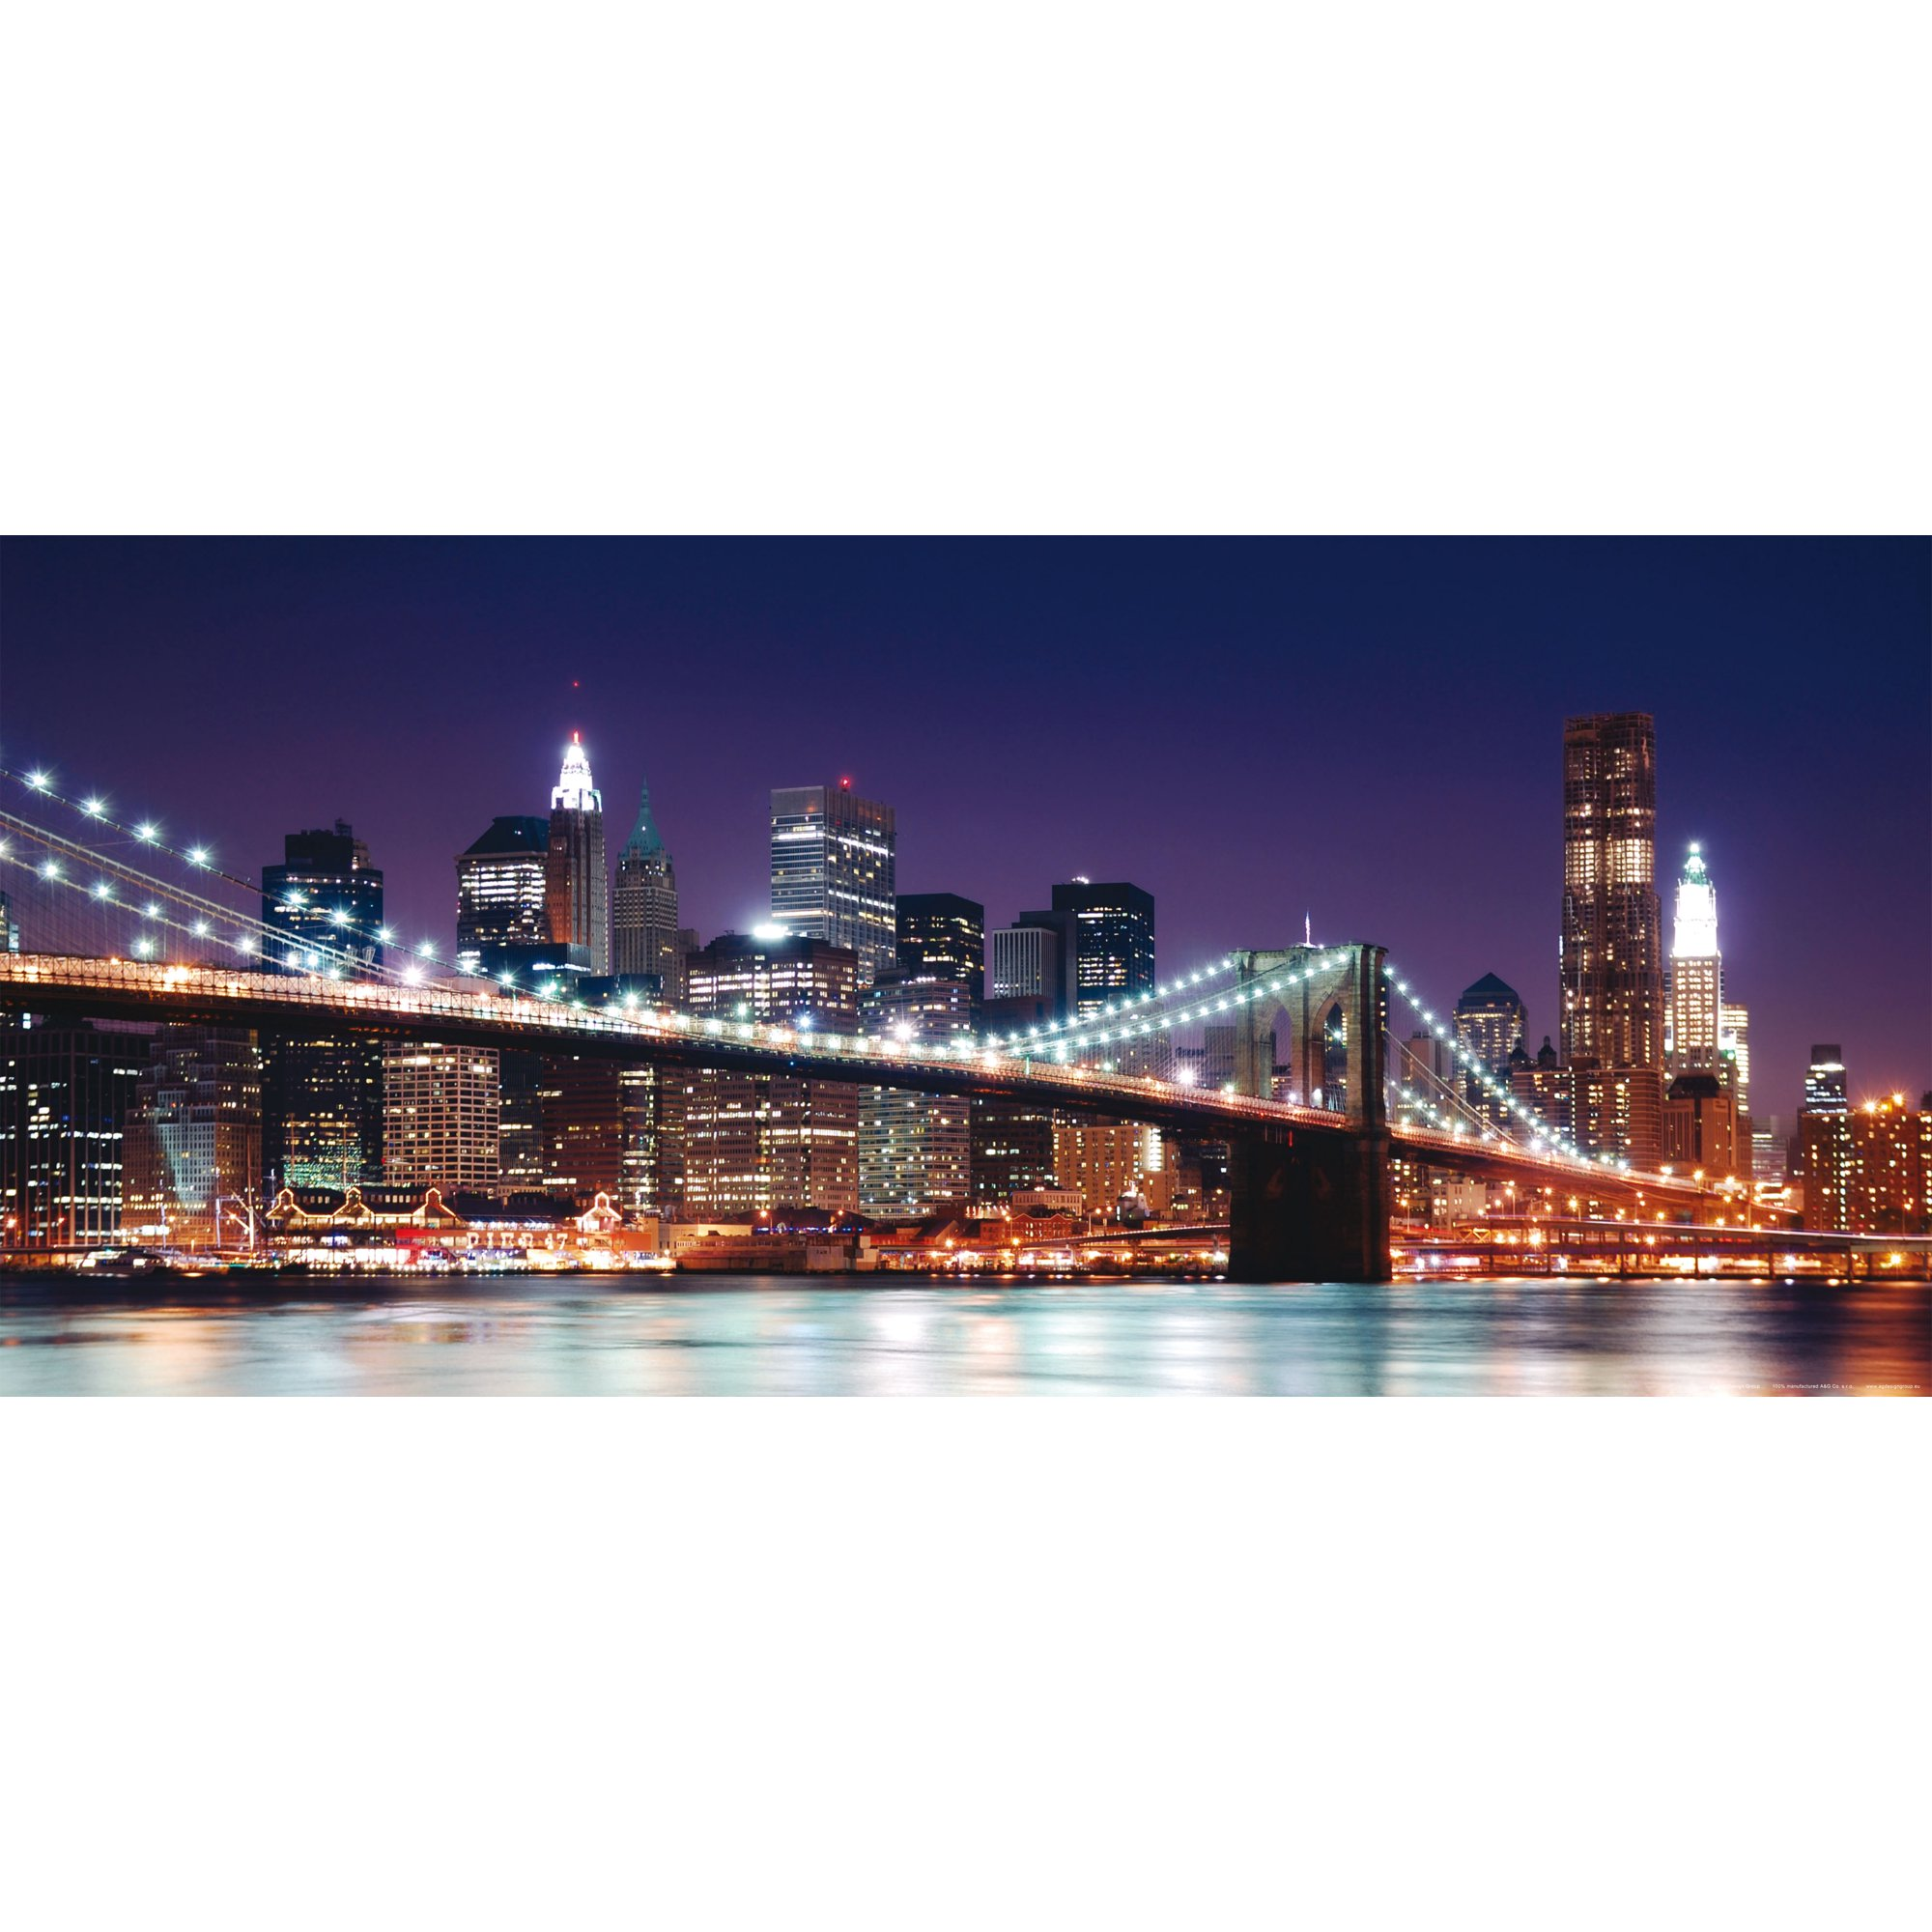 Brooklyn Bridge New York City Manhattan Skyline At Night Wall